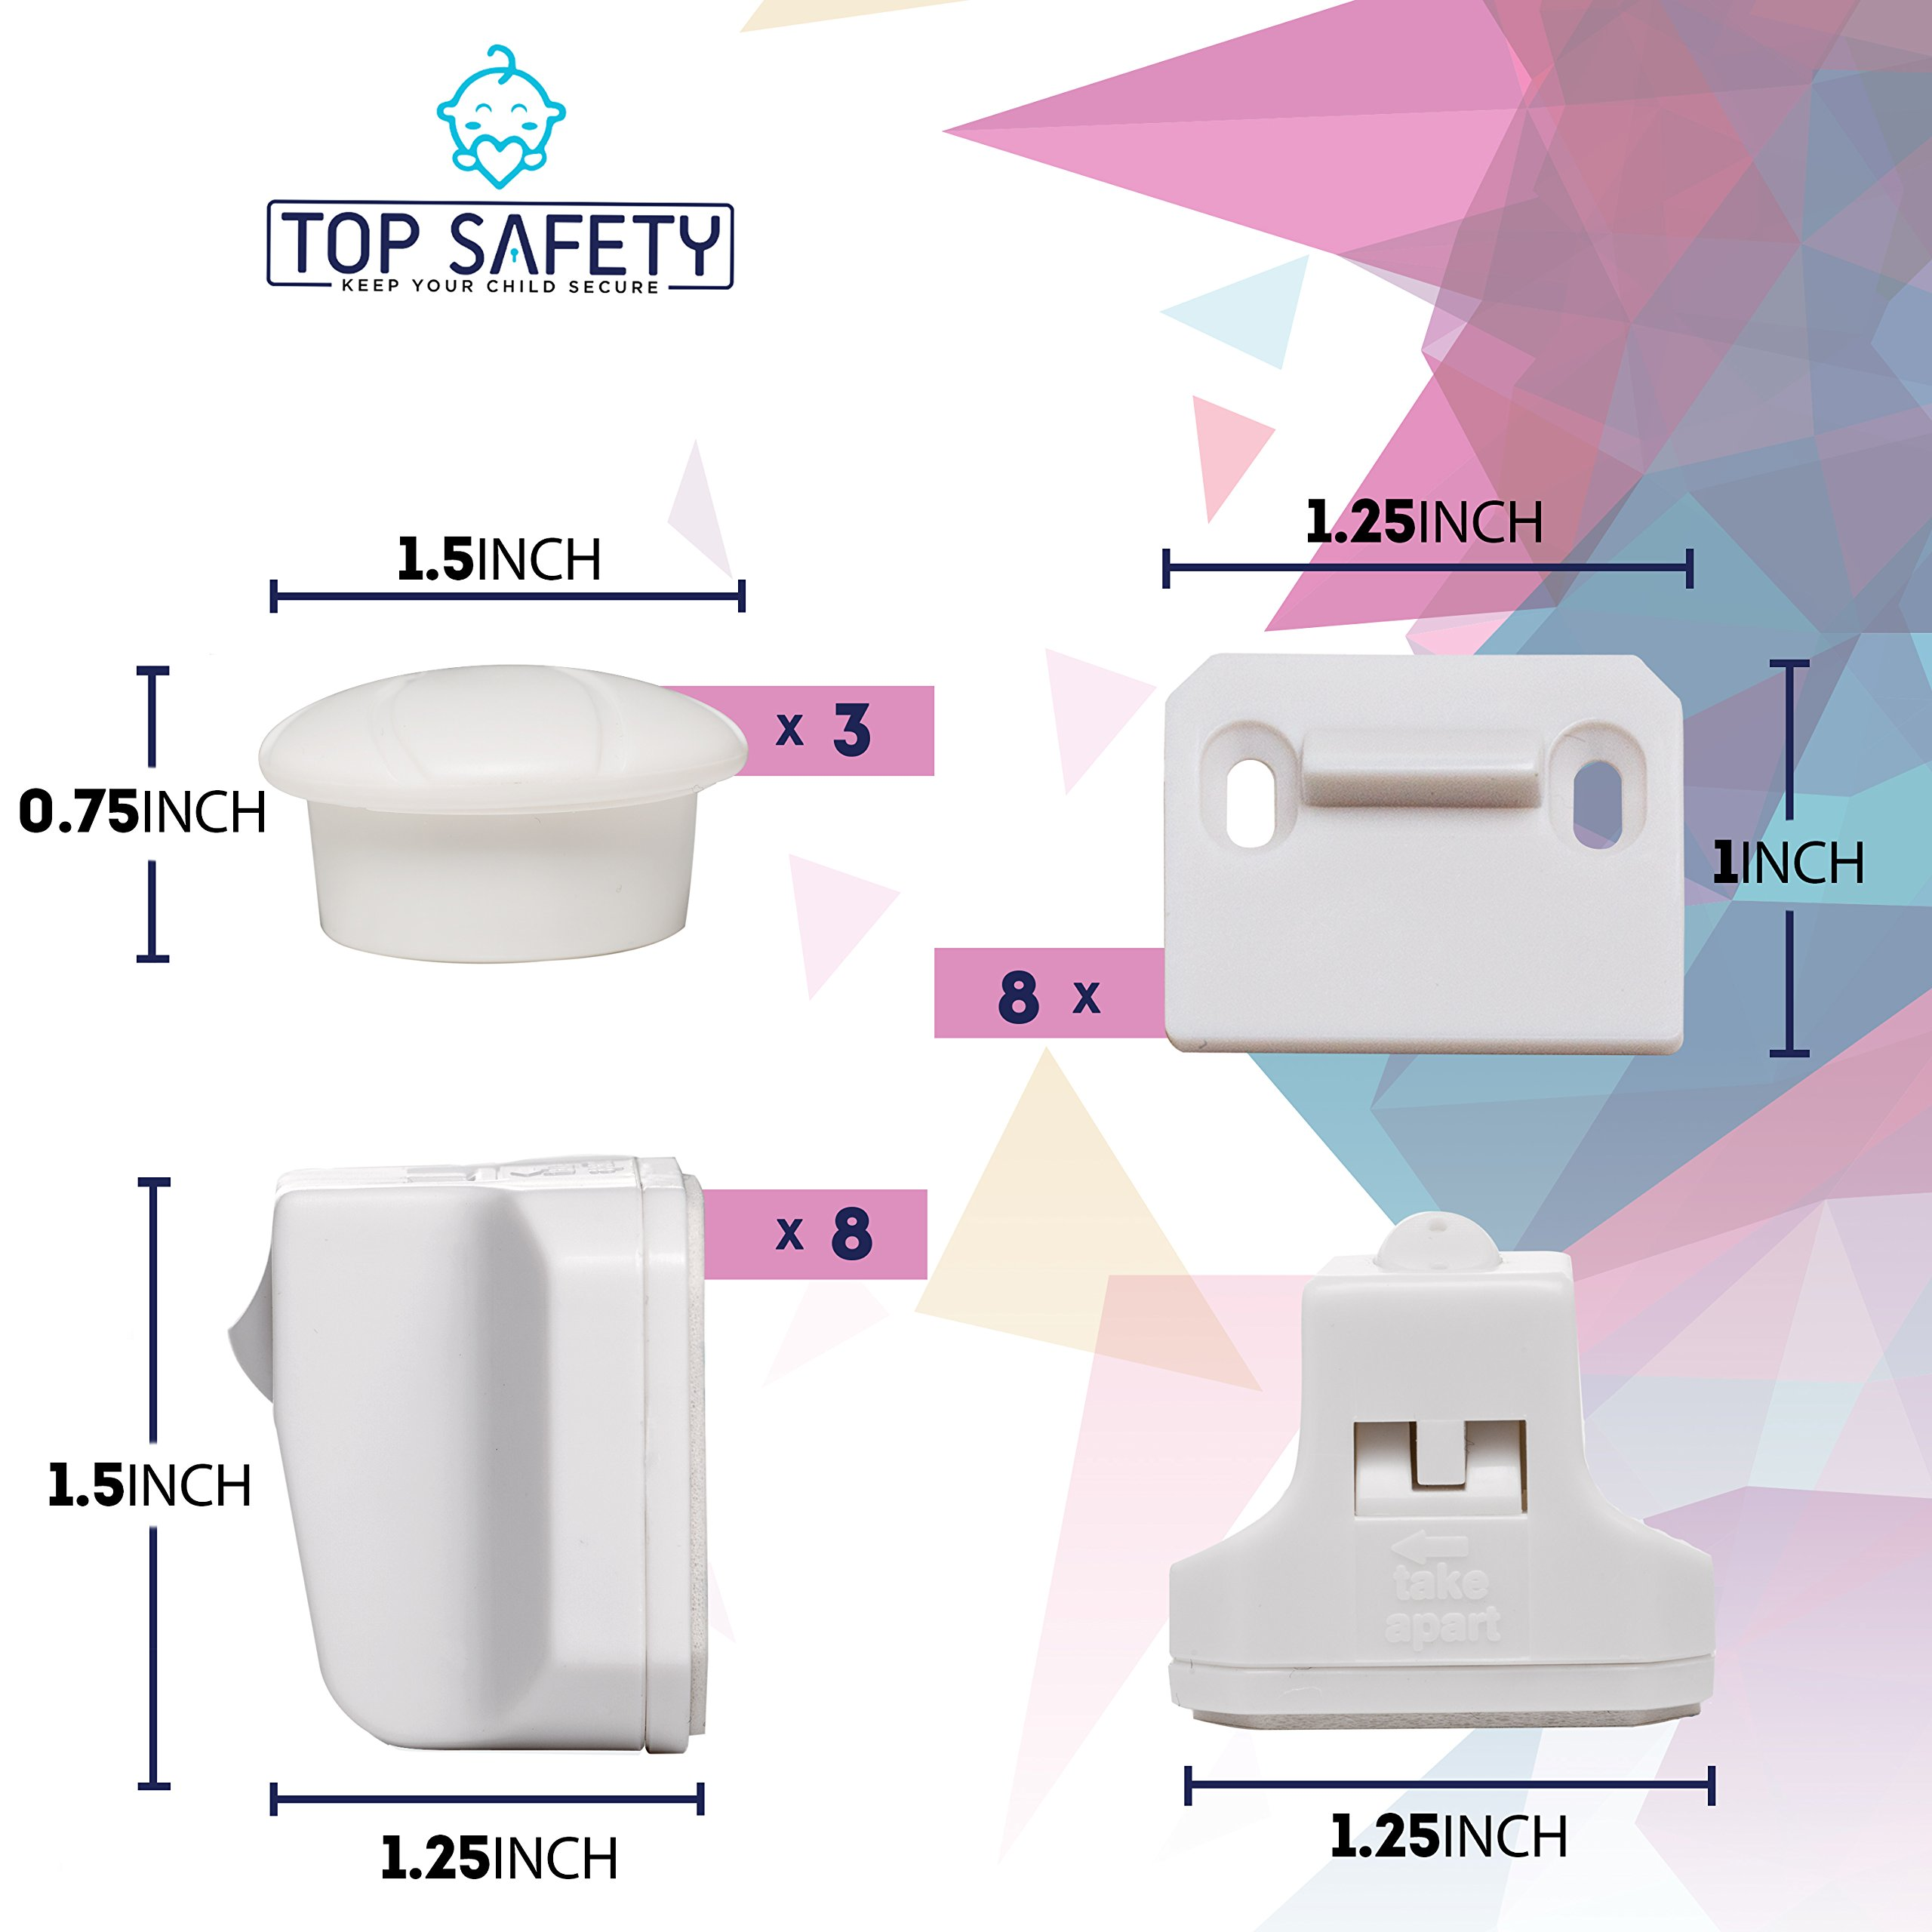 Baby Proof Magnetic Cabinet Locks - 8 Child Safety Locks Adhesive No Drill Invisible Drawer Locks for Baby Safety Child Proof Baby Proofing Cabinets Drawers Dresser Top Safety Baby Child Lock Cabinet by Top Safety (Image #7)